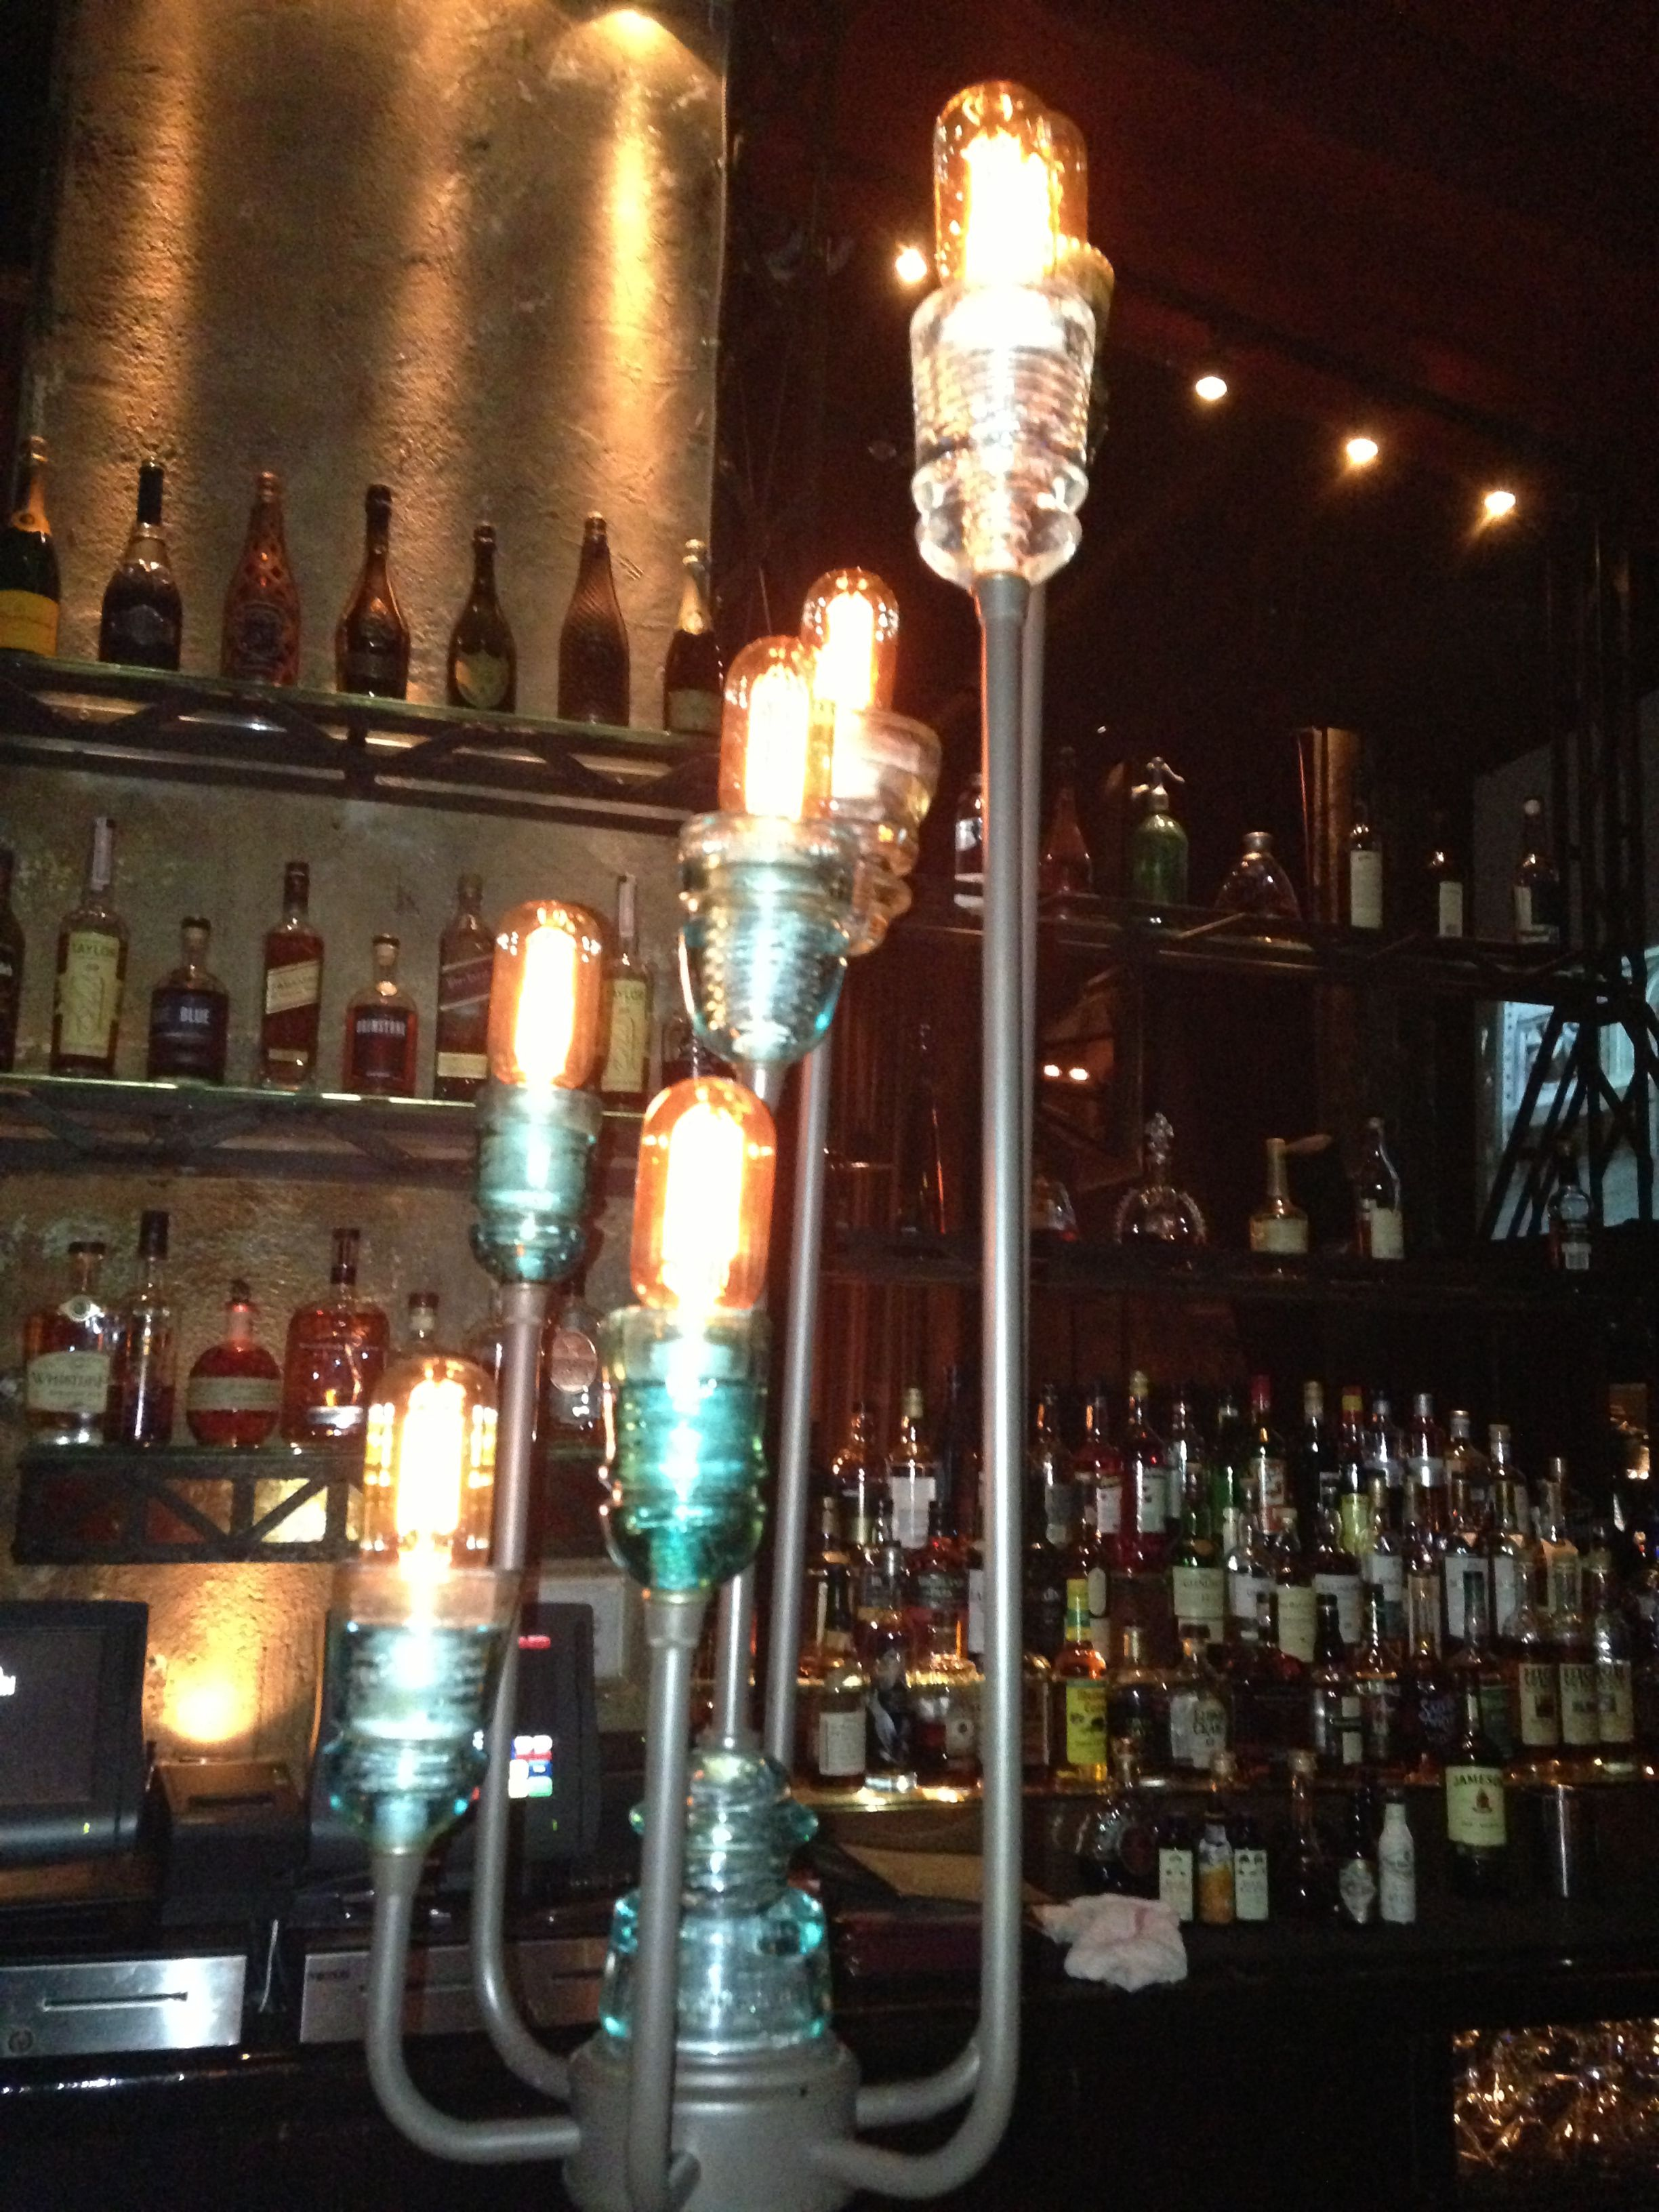 cool bar lighting - Edison bulbs | bar ideas | Pinterest | Bulbs and ...